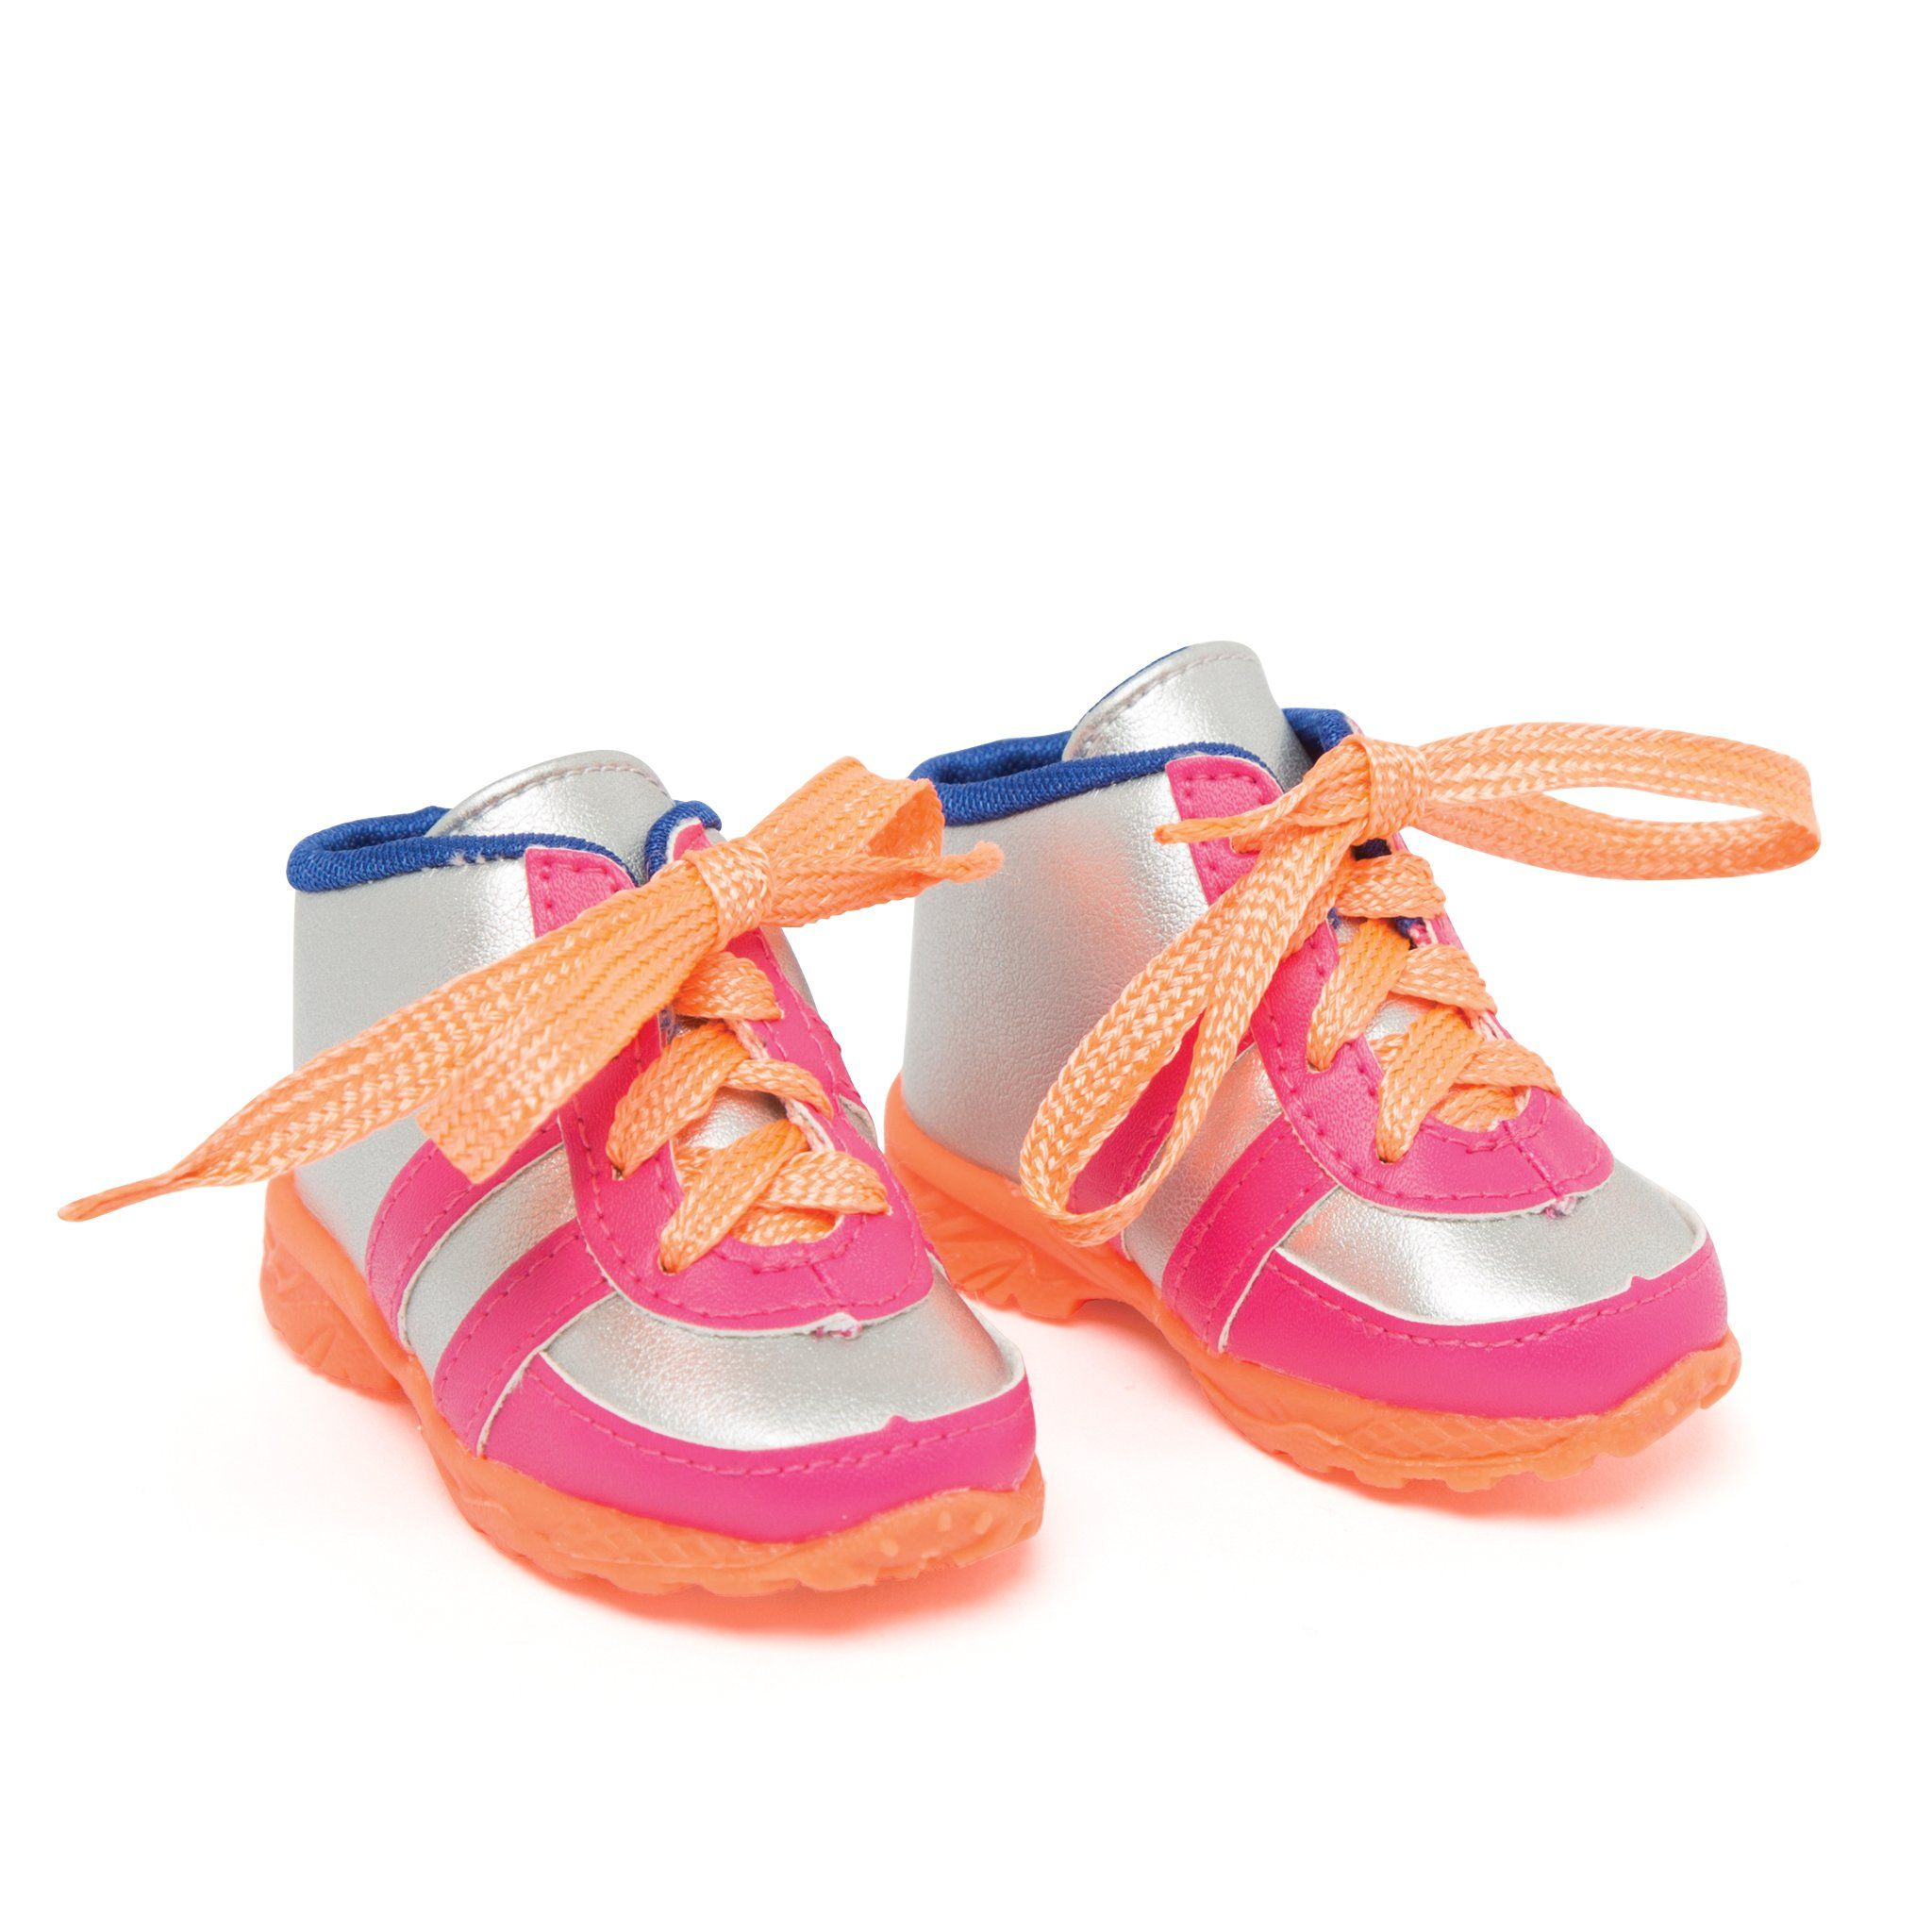 slam dunk silver and orange running shoes fits all 18 inch dolls.